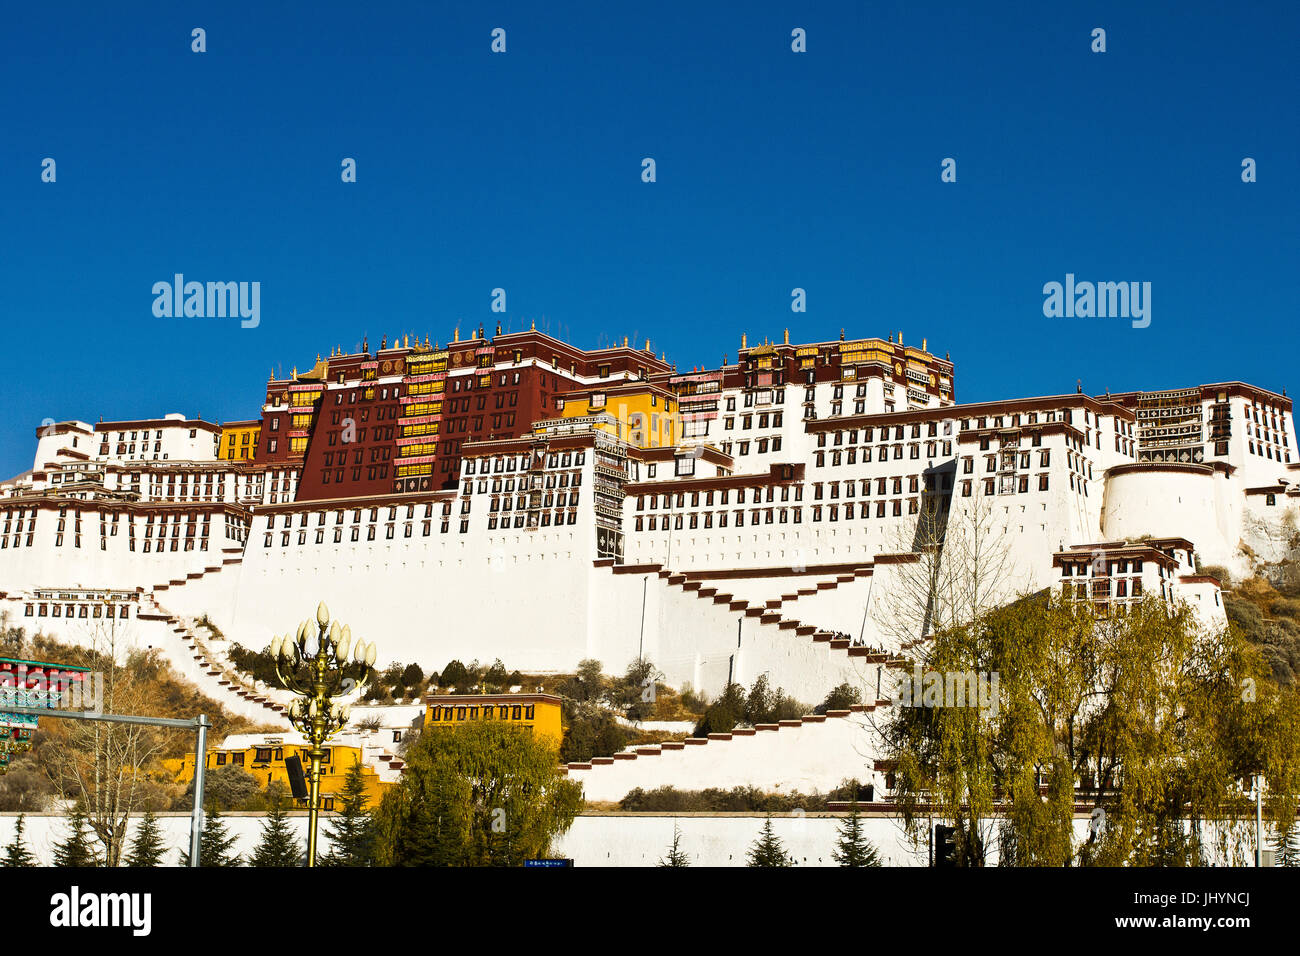 The Potala Palace under blue sky, UNESCO World Heritage Site, Lhasa, Tibet, China, Asia - Stock Image